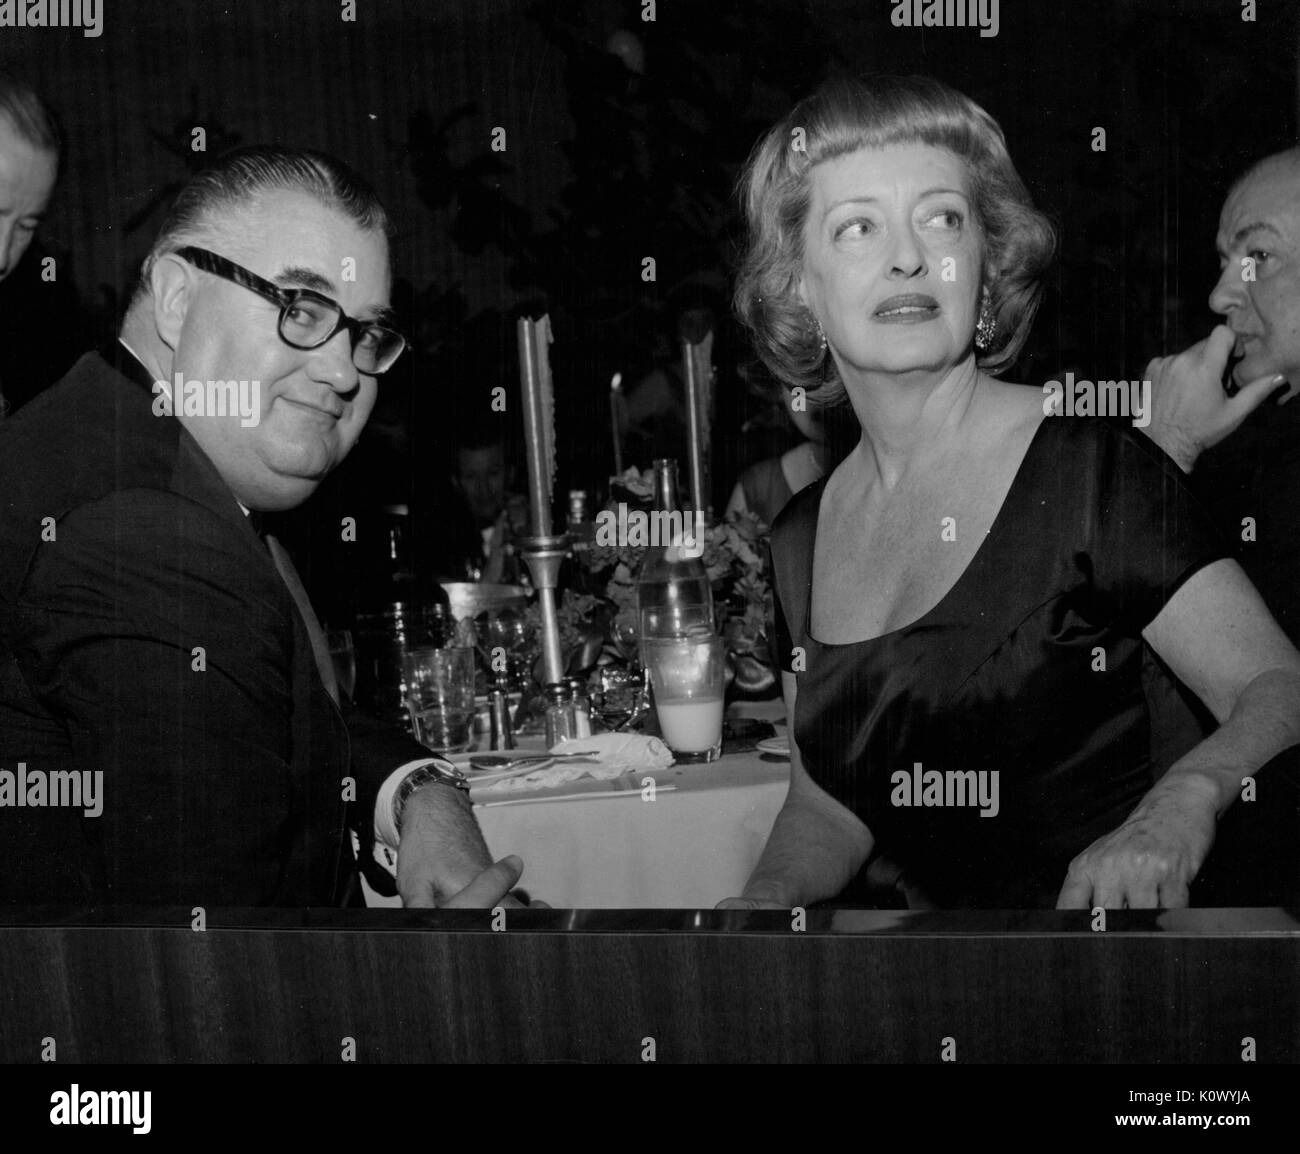 Bette Davis, sitting at a banquet table with an unidentified man, turning around in her chair and looking to her right, in a dark room during a dinner, Hollywood, California, Hollywood, California, 1950. Photo credit Smith Collection/Gado/Getty Images. - Stock Image